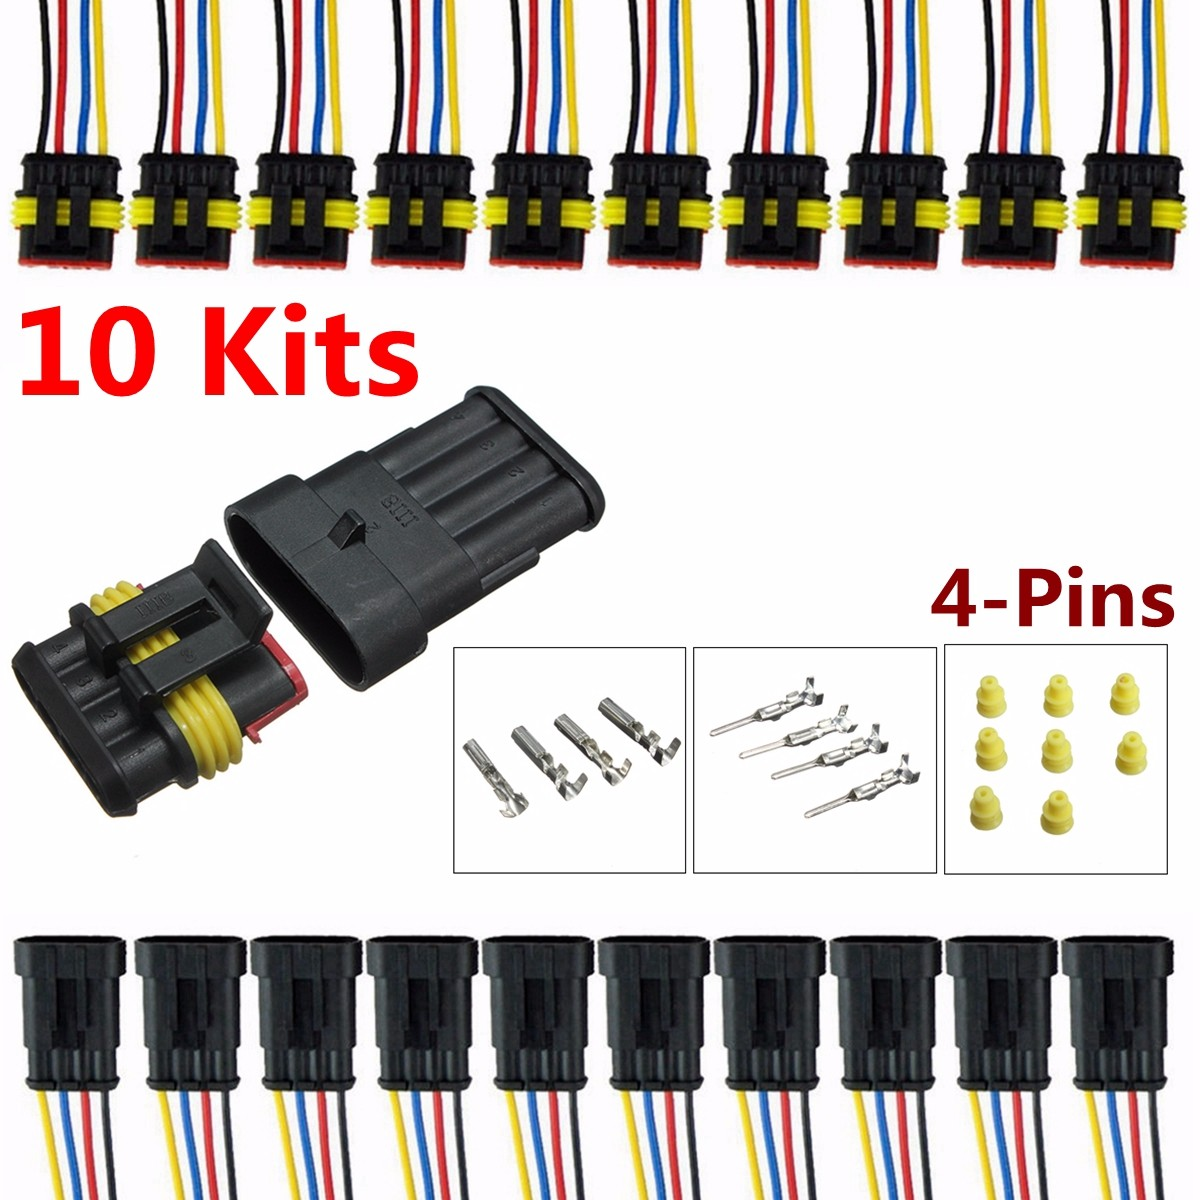 audew 10 kits 4 pin way electrical wire connector plug car auto about 10 kit 4 pin way waterproof electrical wire connector plug [ 1200 x 1200 Pixel ]